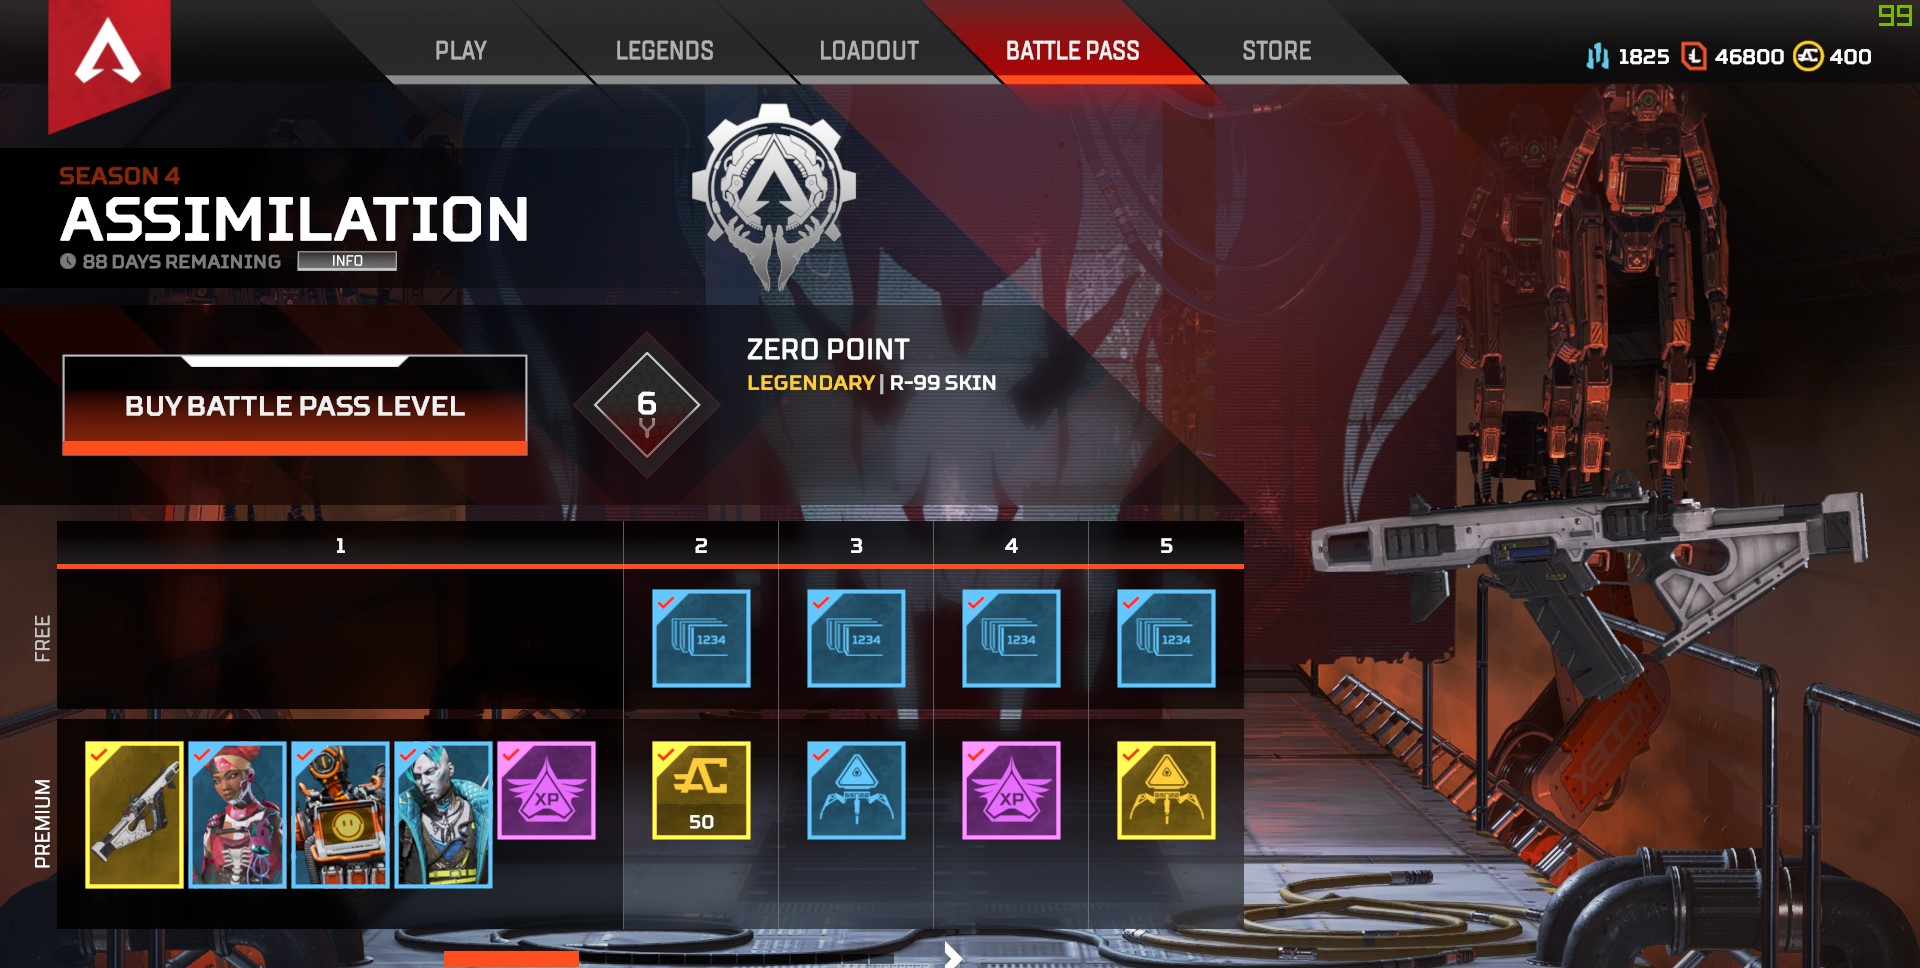 Apex Legends Calendario Battle Pass season 4